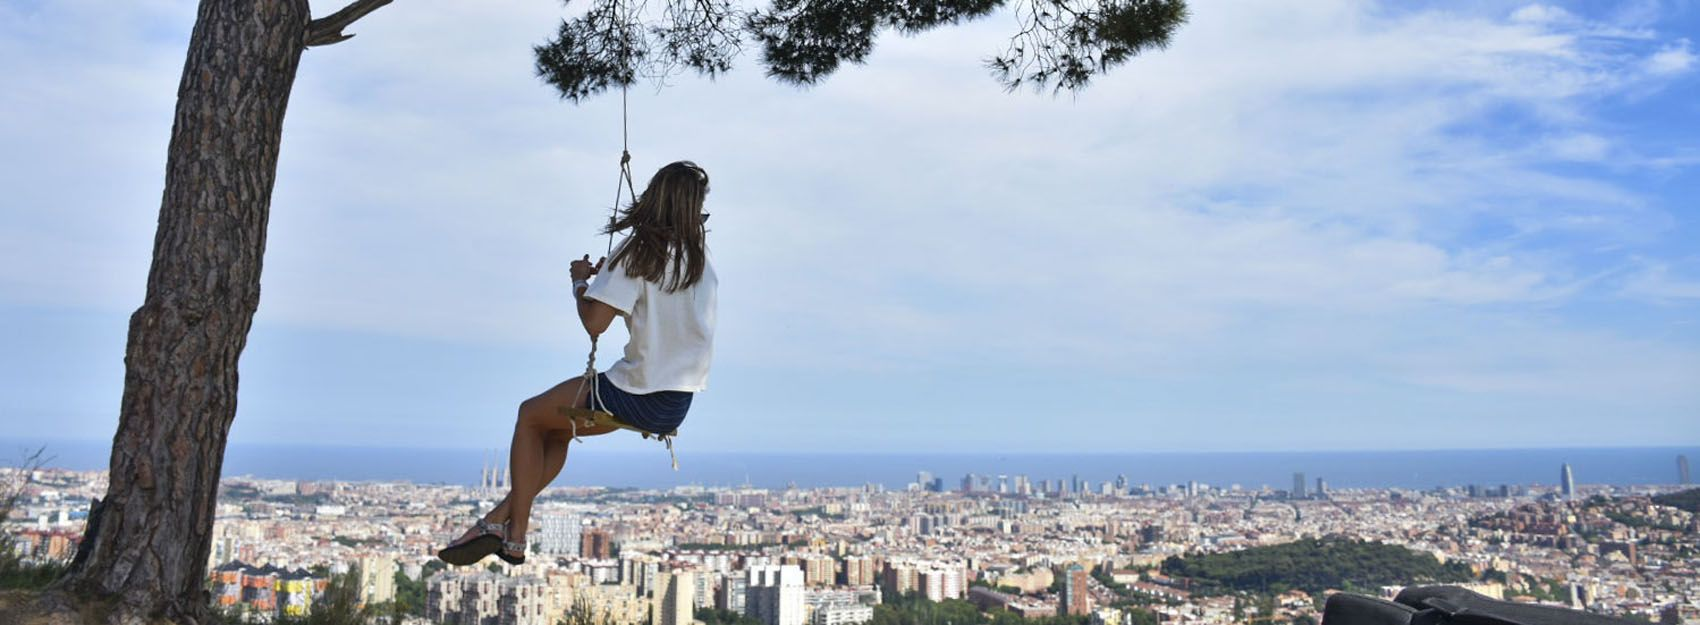 student on tree swing overlooking the city of Barcelona and the Mediterranean Sea